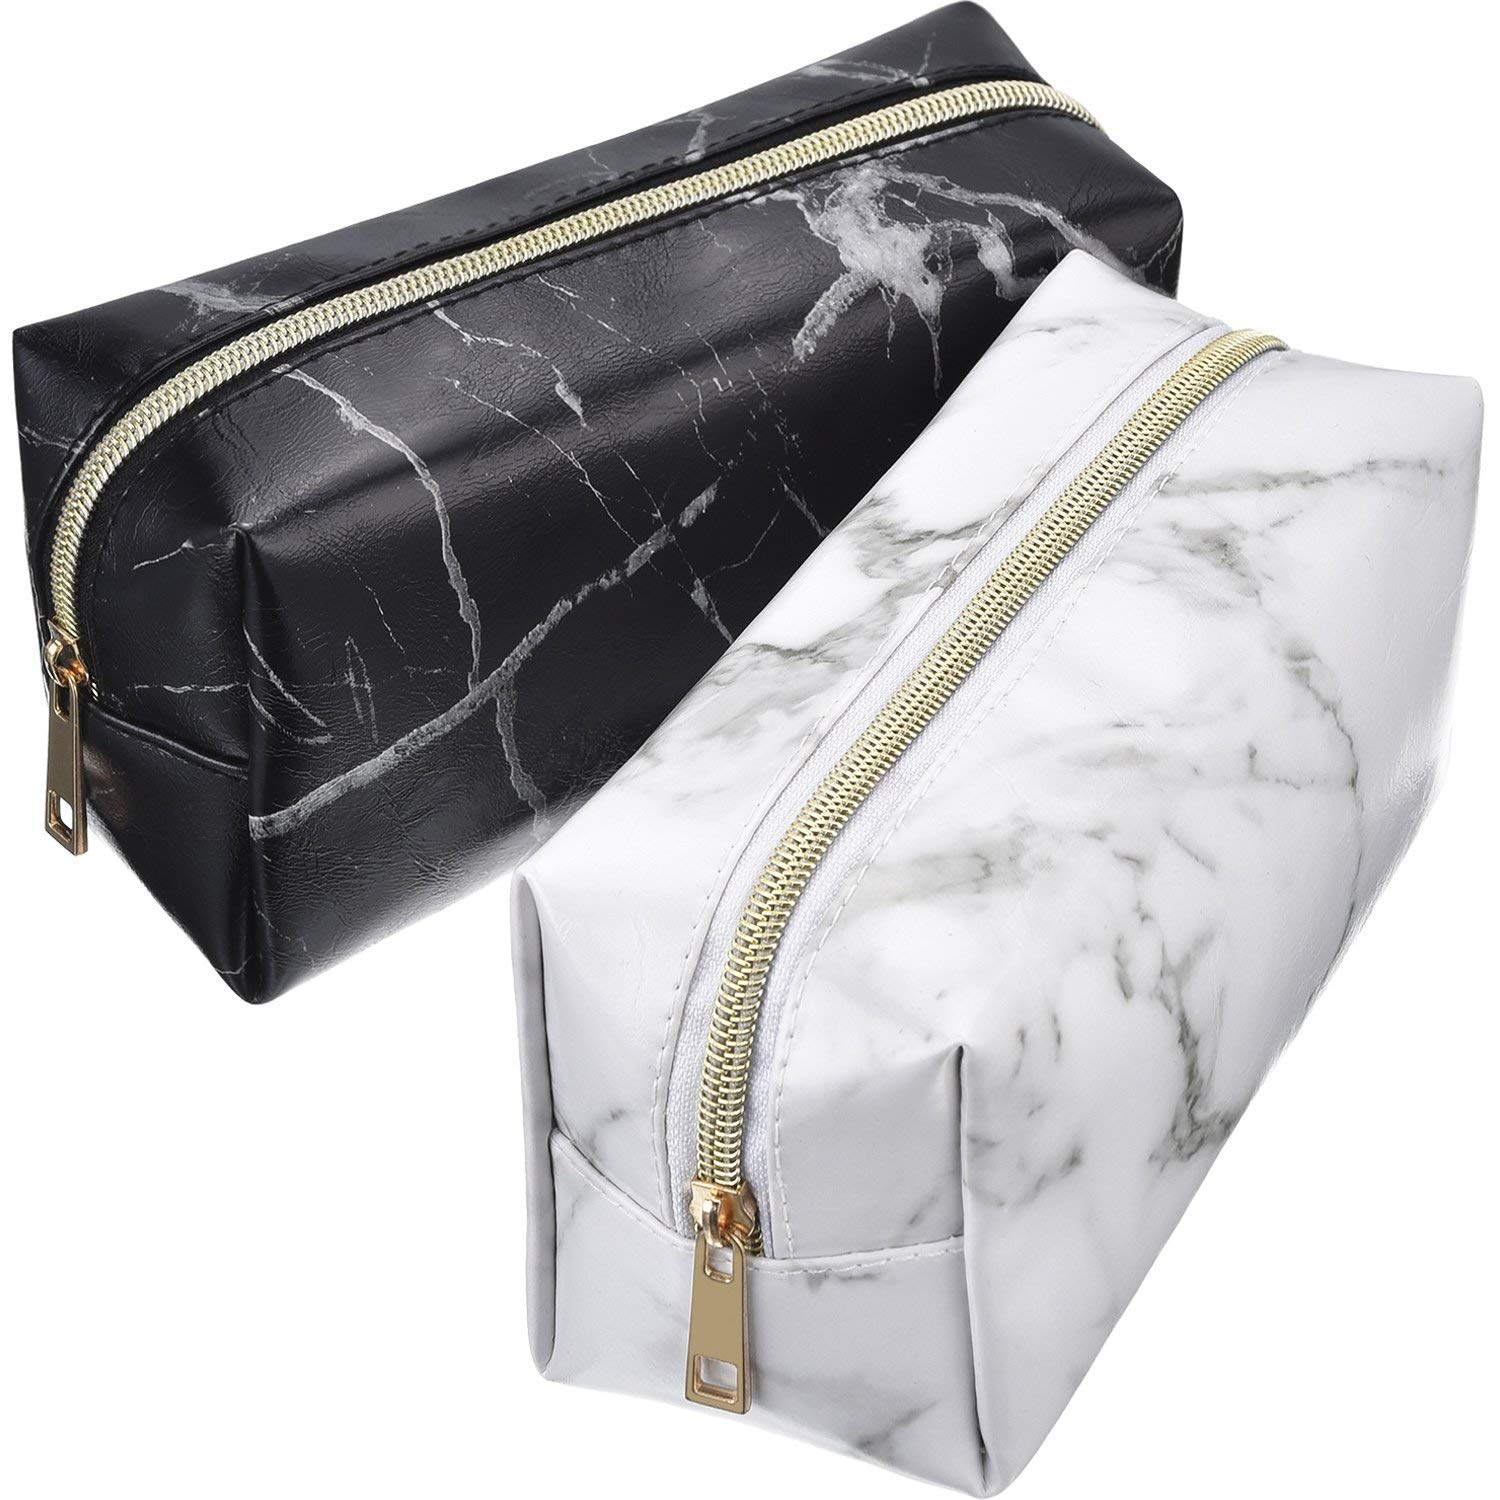 CASTEL 2 Pieces Cosmetic Toiletry Makeup Bag Pouch Gold Zipper Storage Bag Marble Pattern Portable Makeup Brushes Bag (S, White and Black)